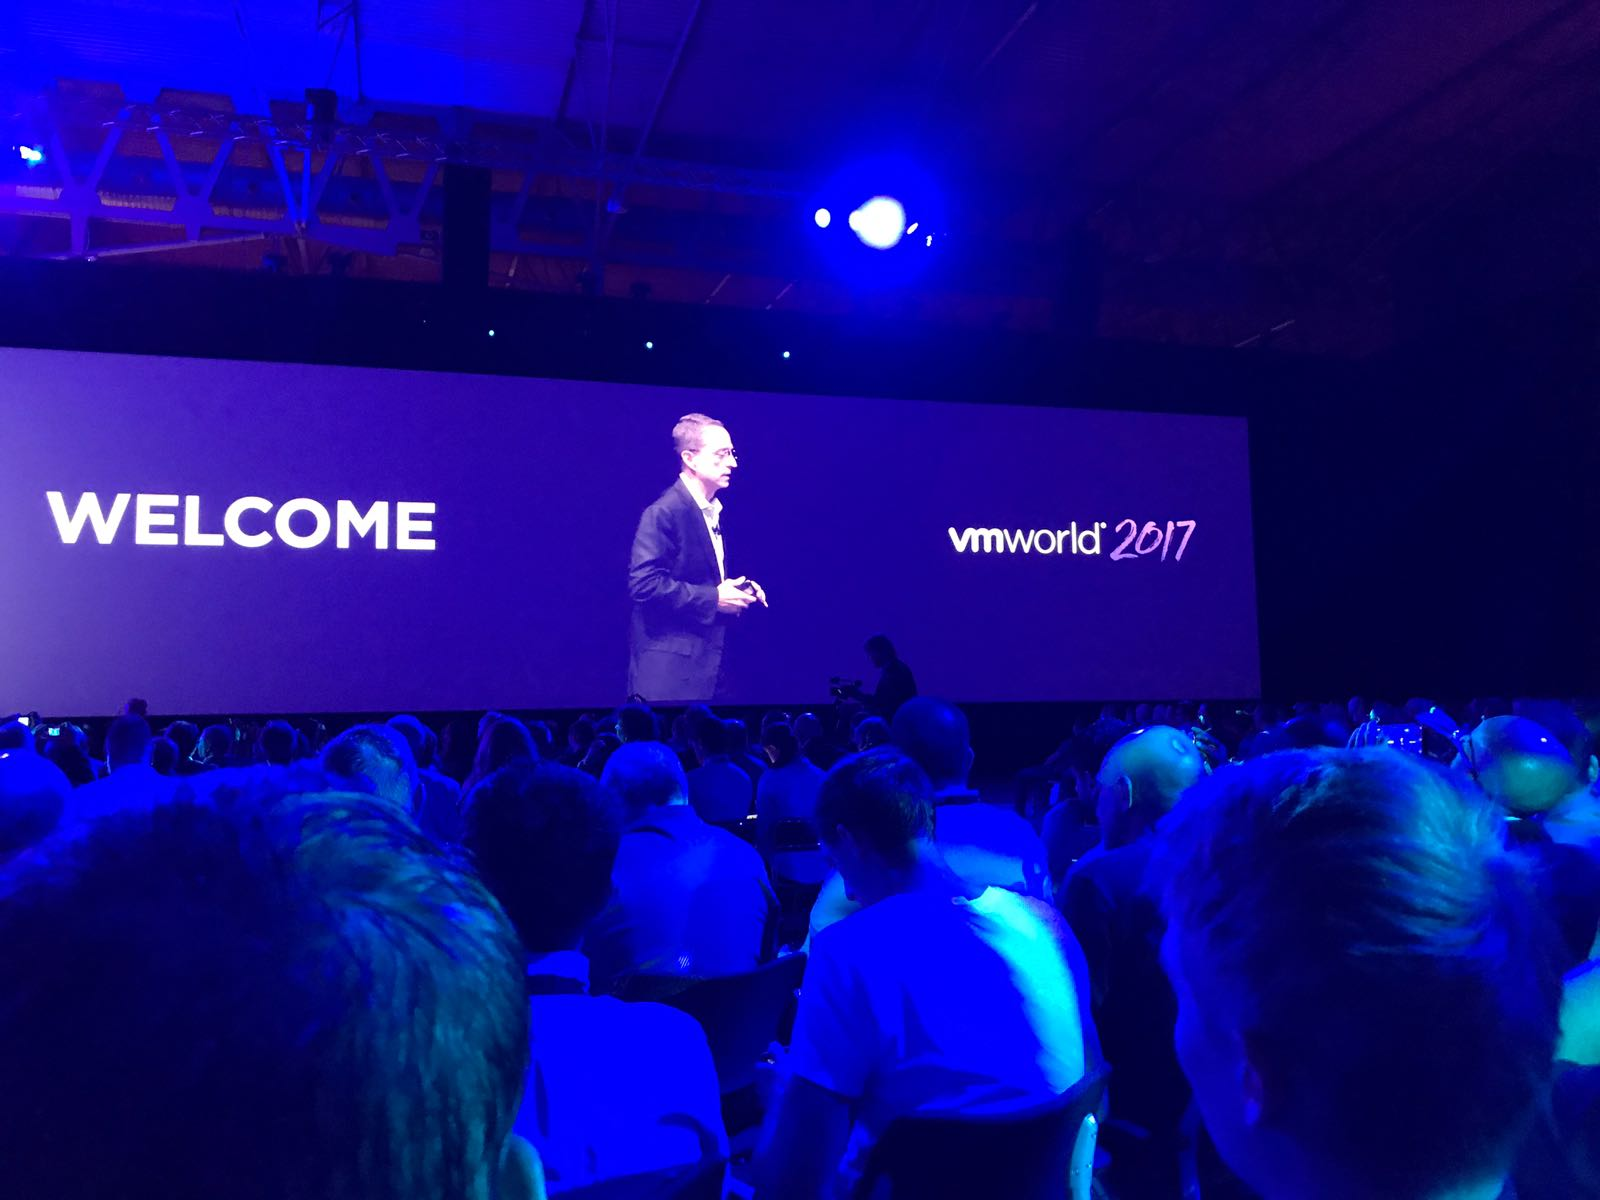 welcome vmworld